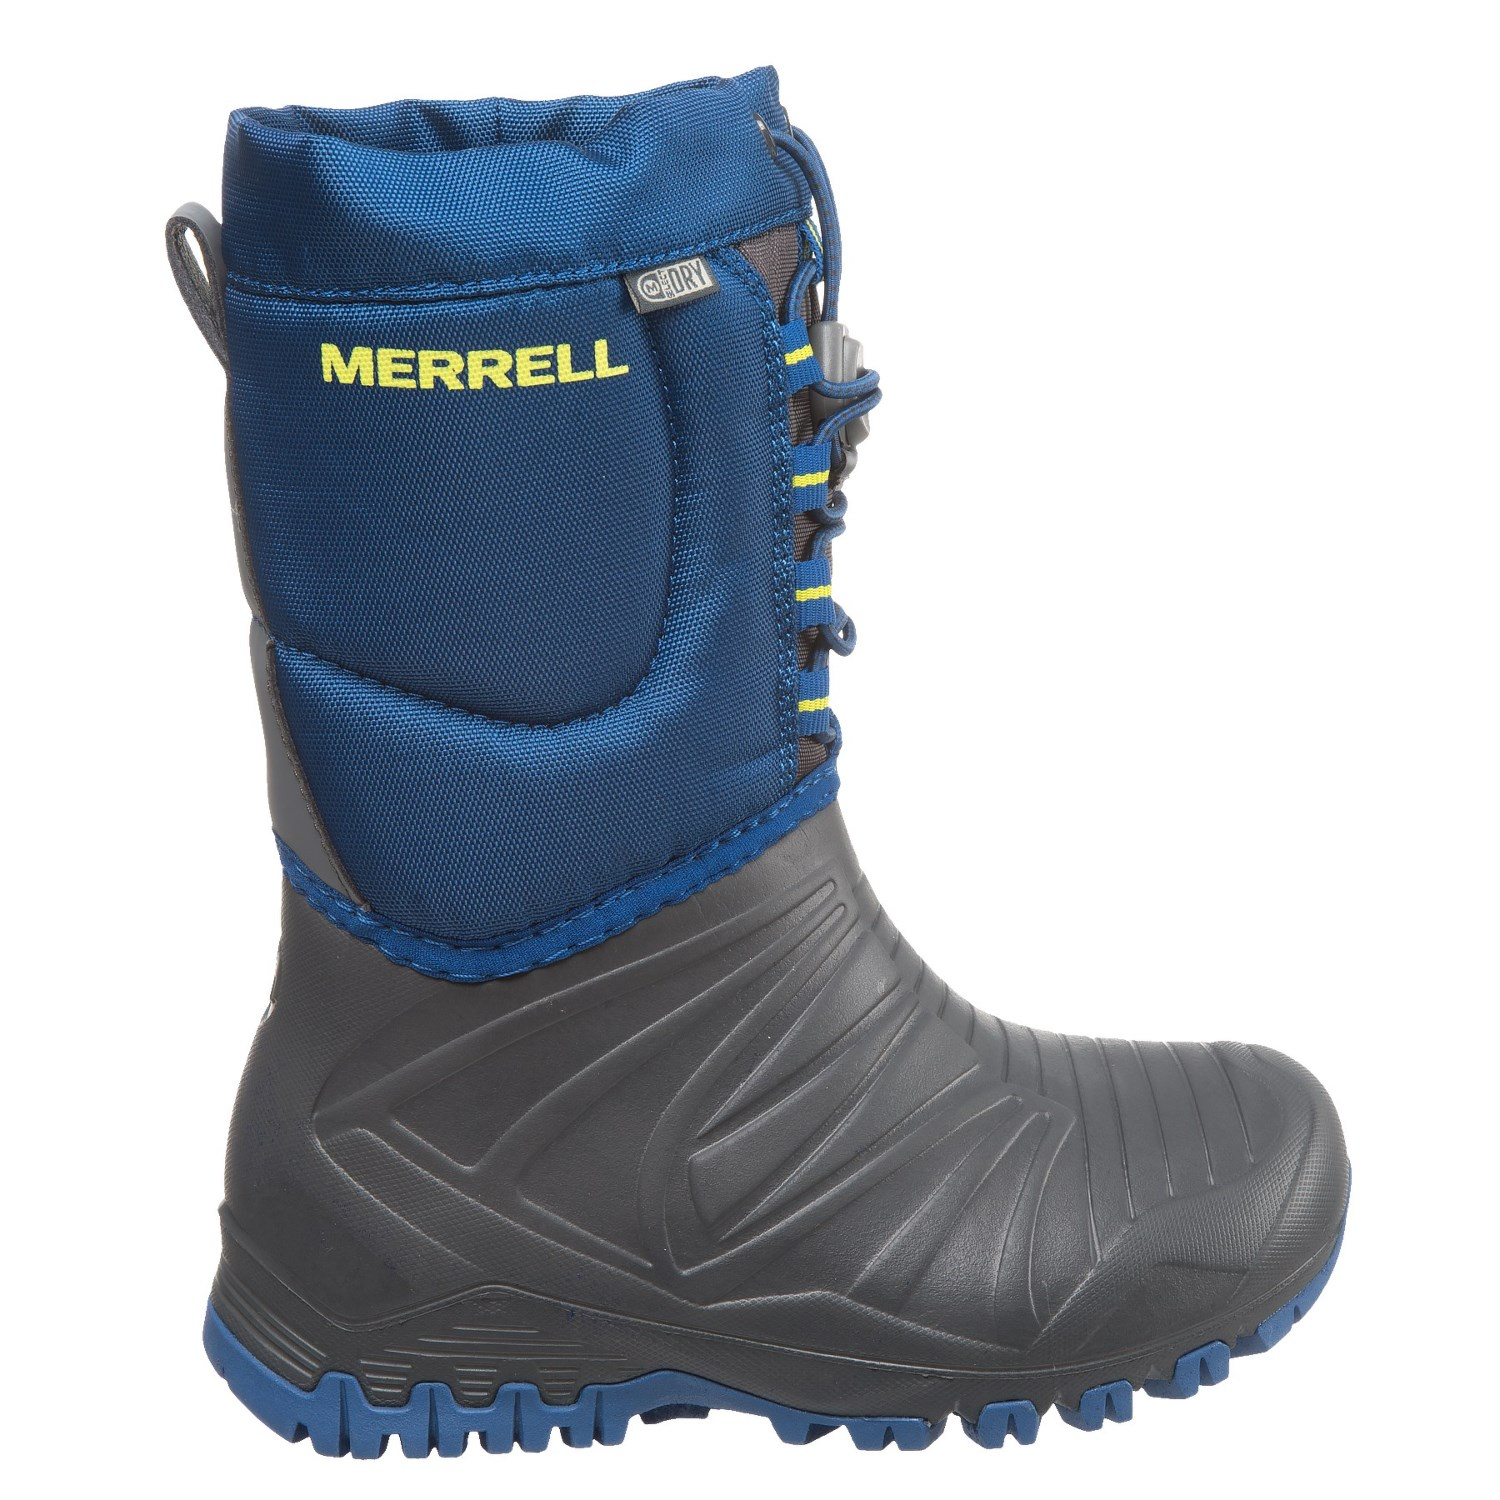 Merrell Snow Quest Pac Boots (For Boys) - Save 68% 324094745644